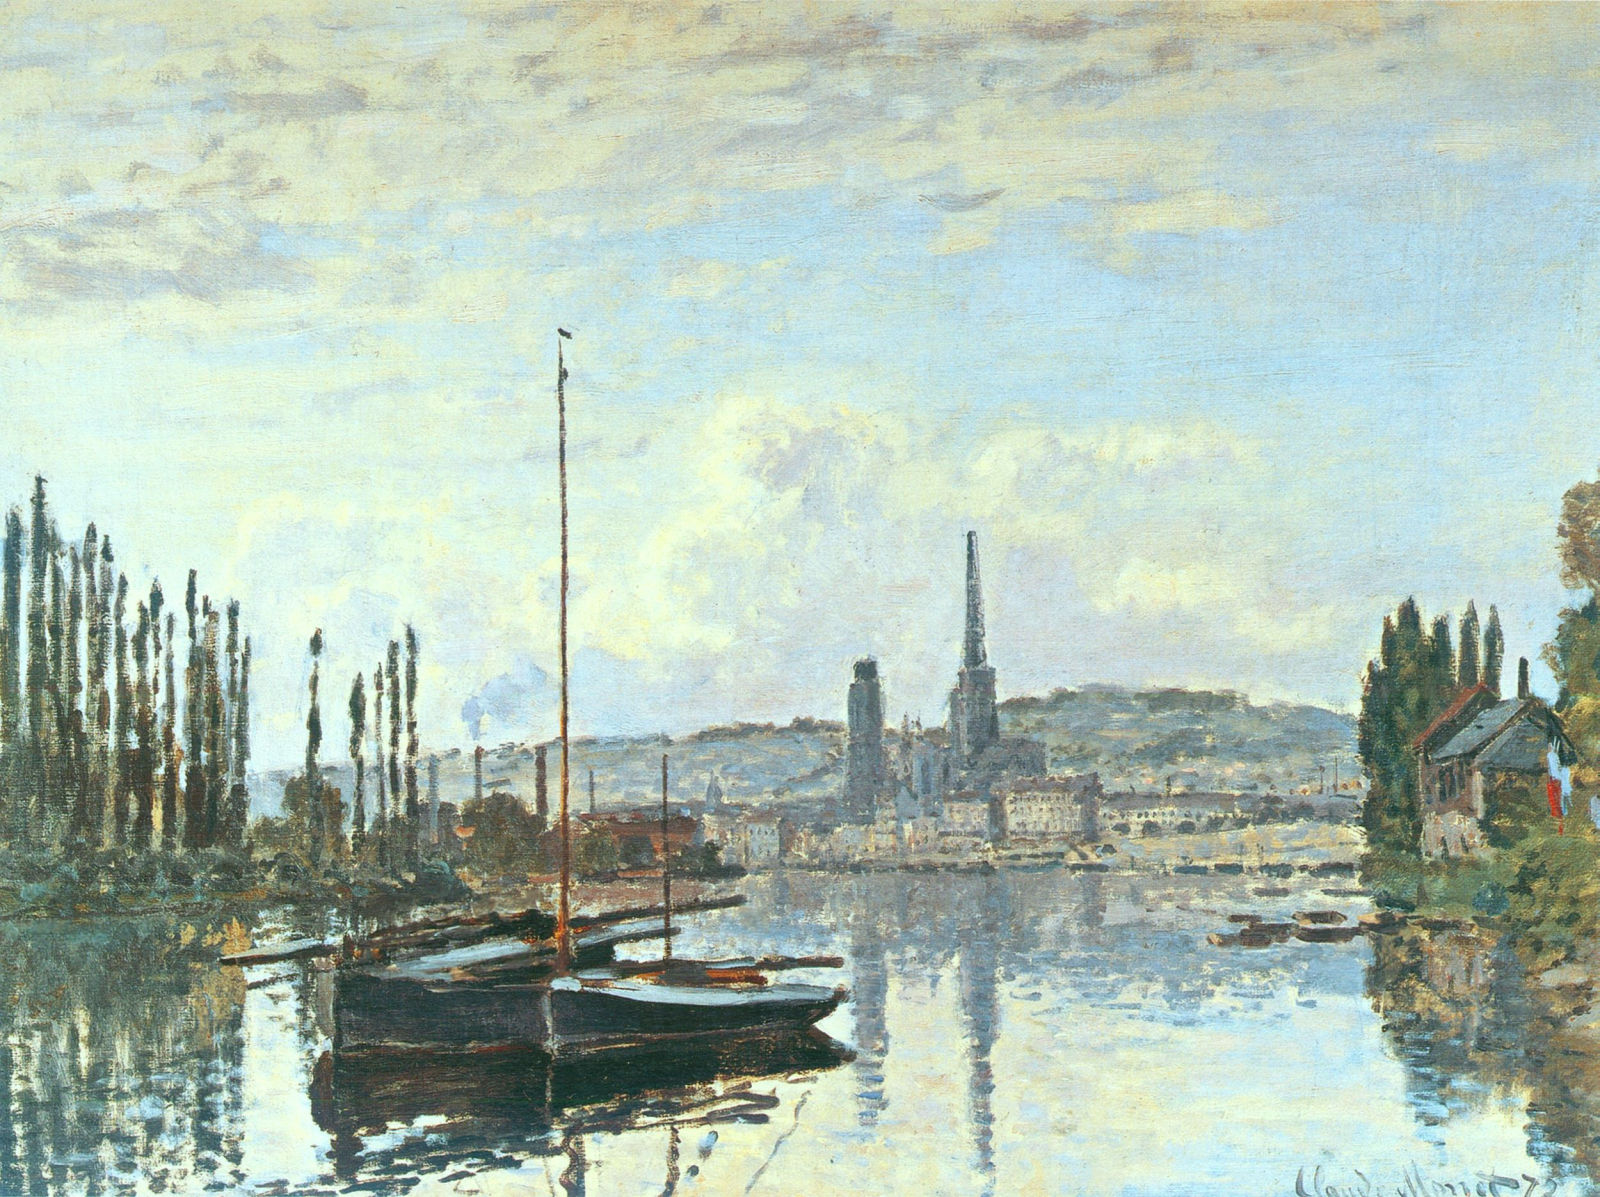 https://uploads5.wikiart.org/images/claude-monet/view-of-rouen.jpg